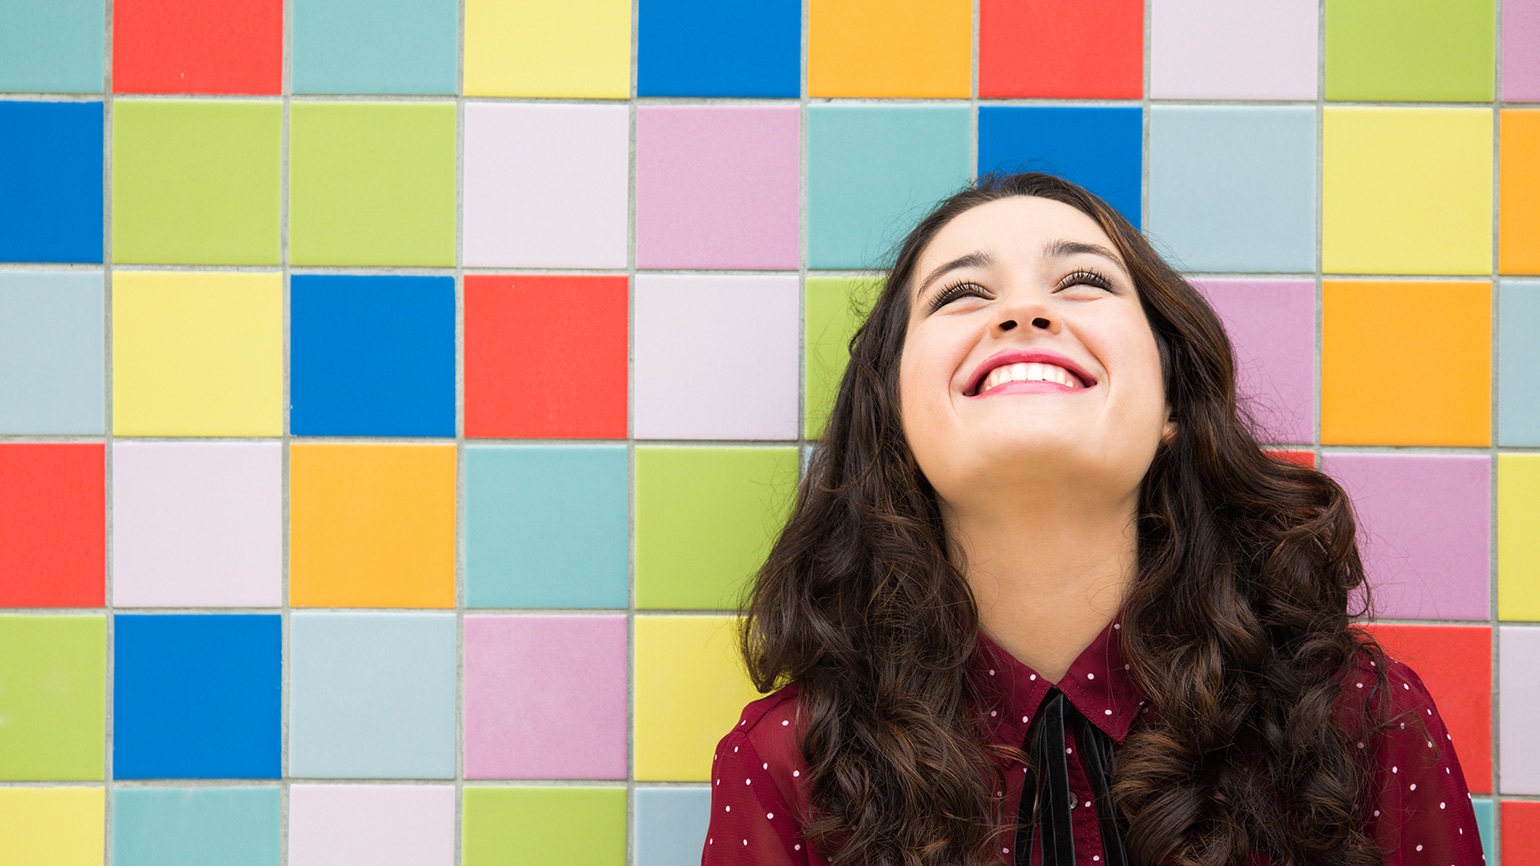 Smiling woman standing in front of colorful tiles